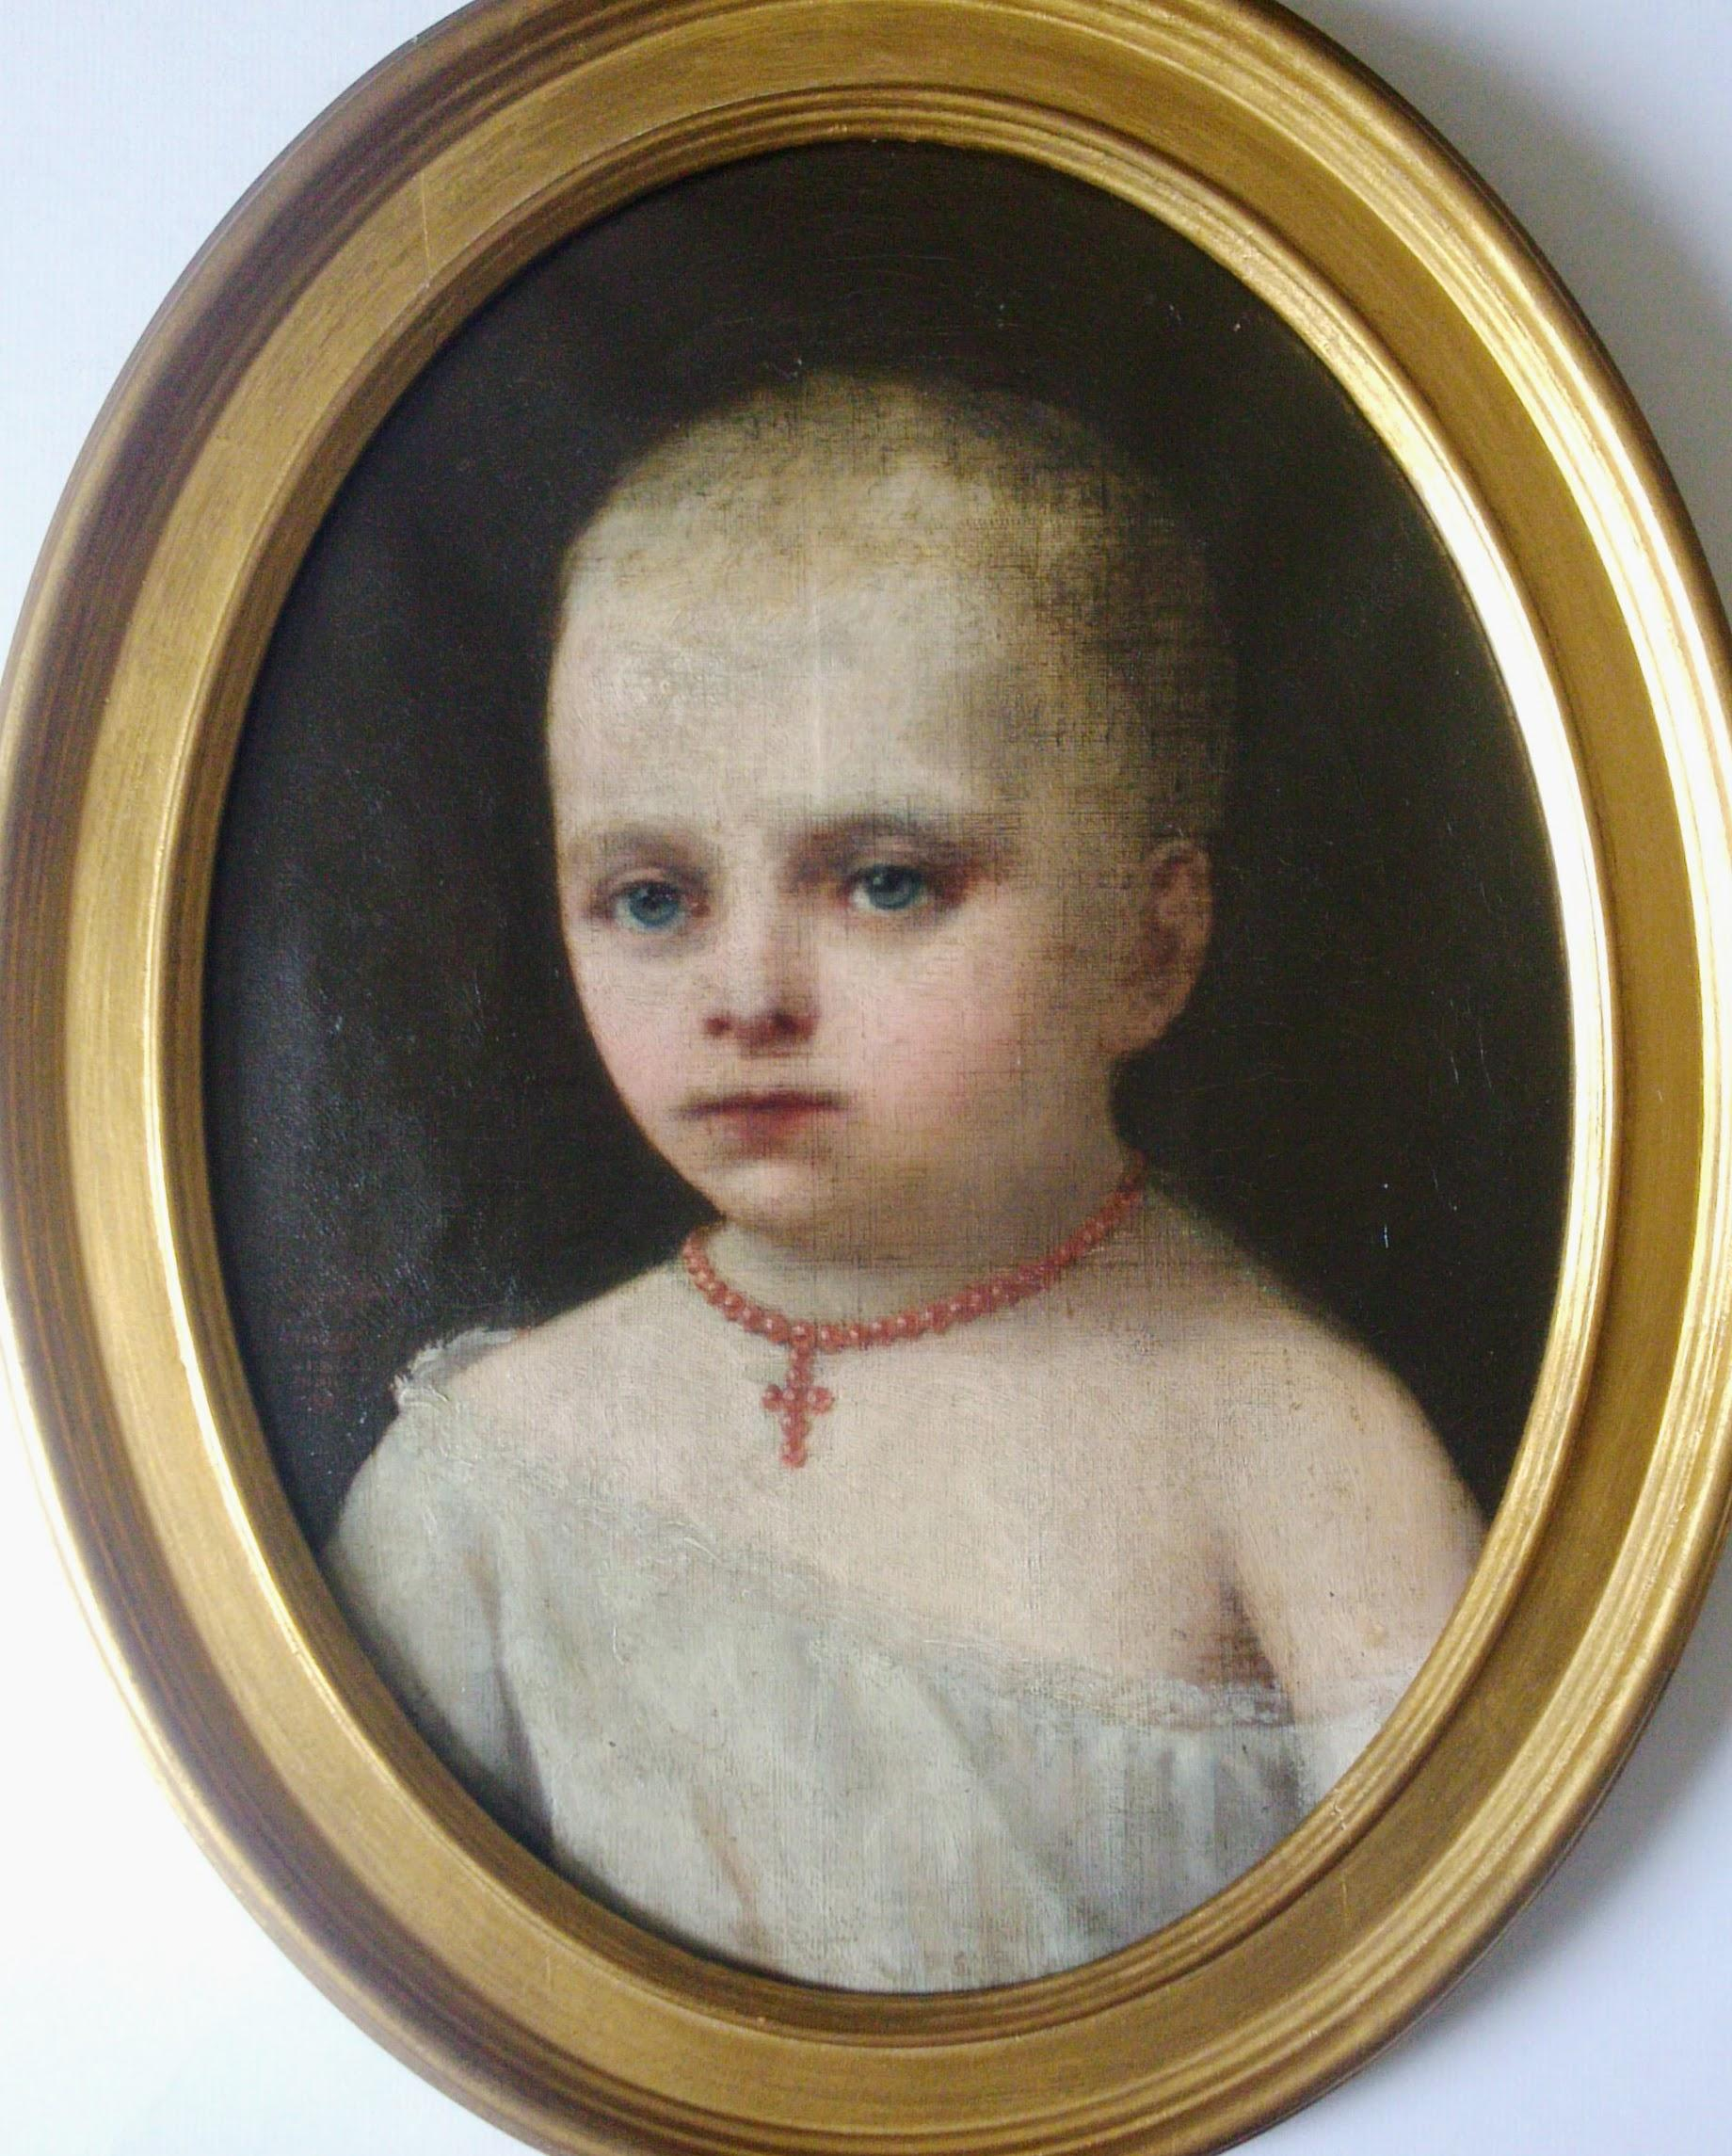 Young child 19th century baby portrait by French portraitist of Brazilian royals